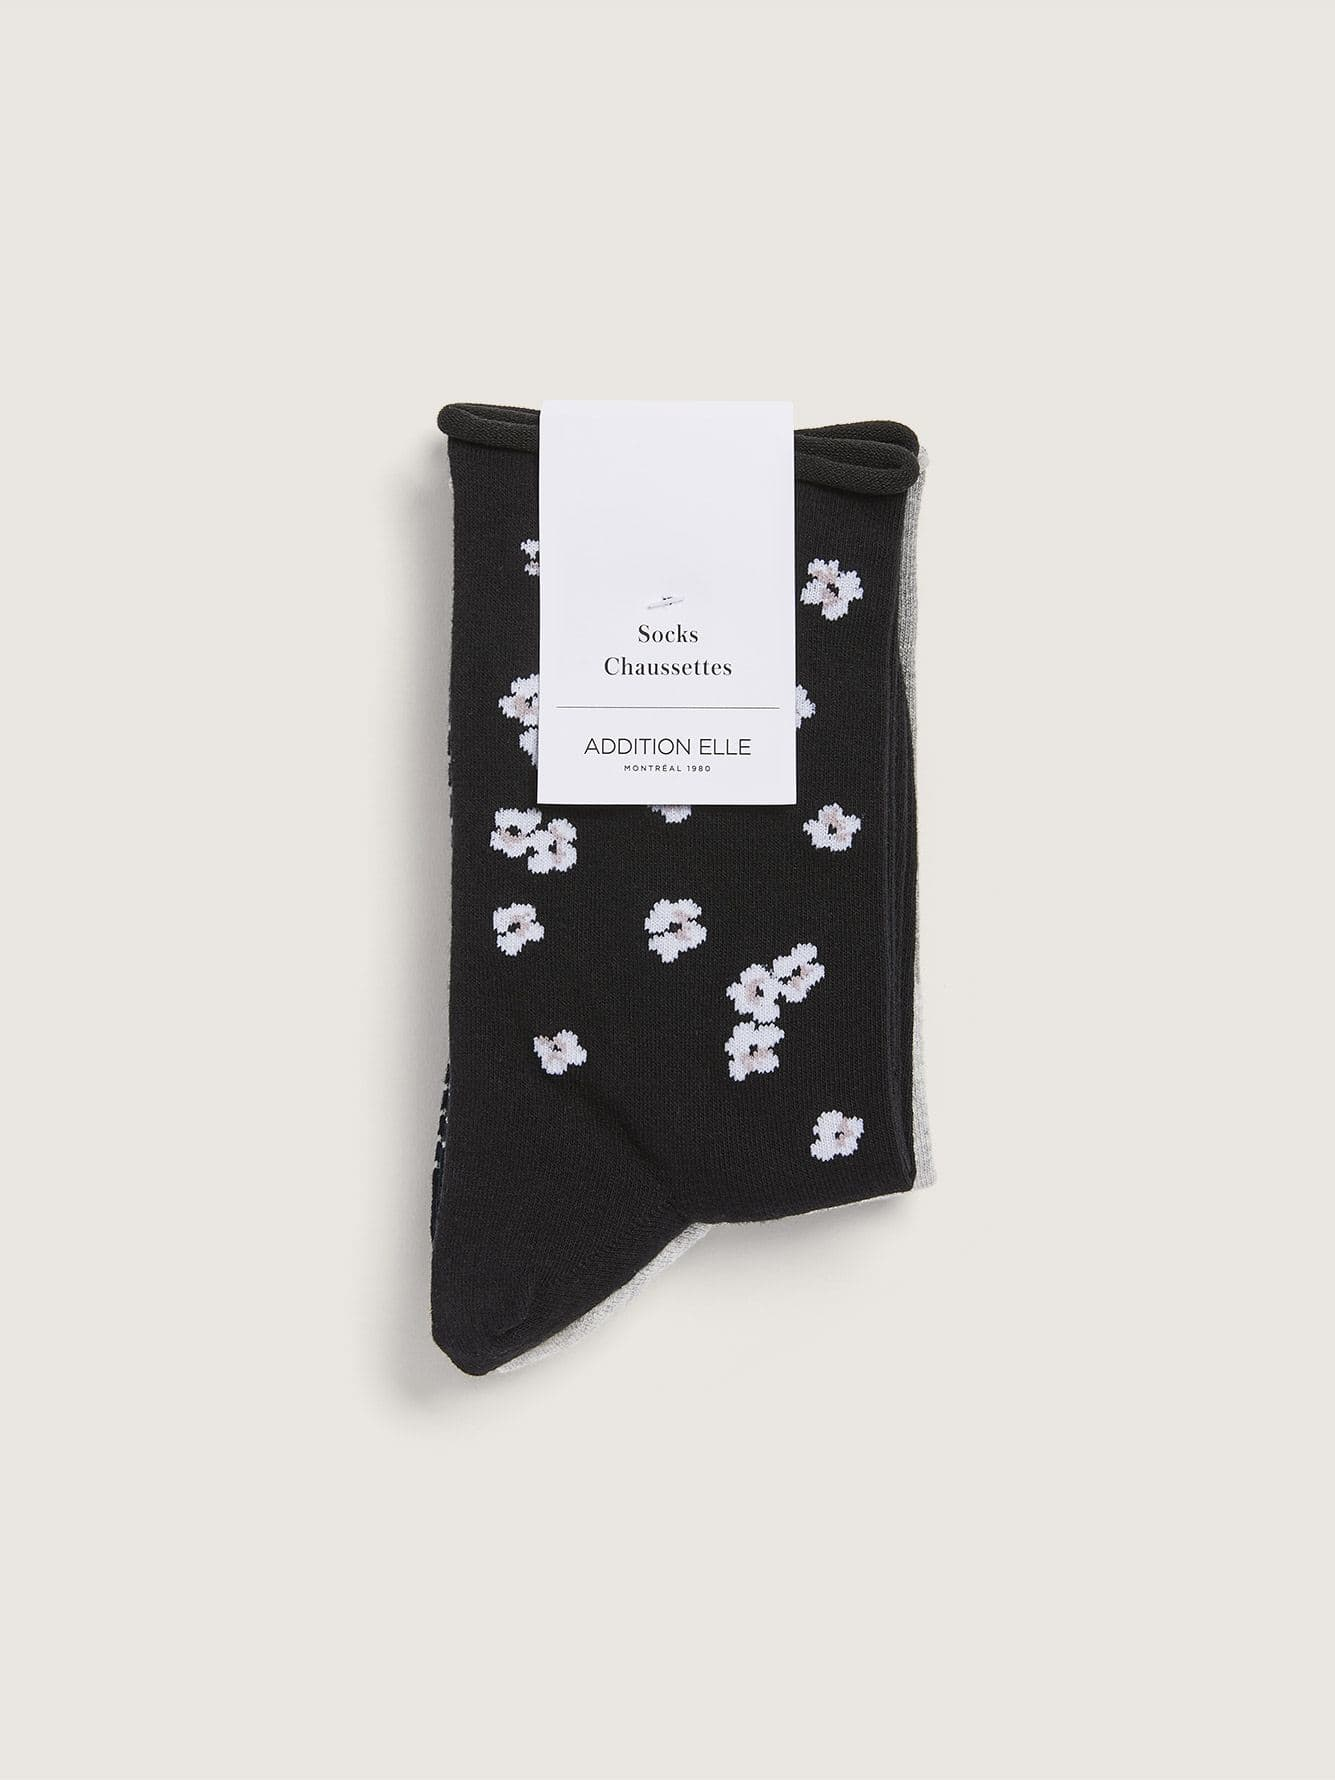 3 Pairs of Printed Cotton Socks with Rolled Edge